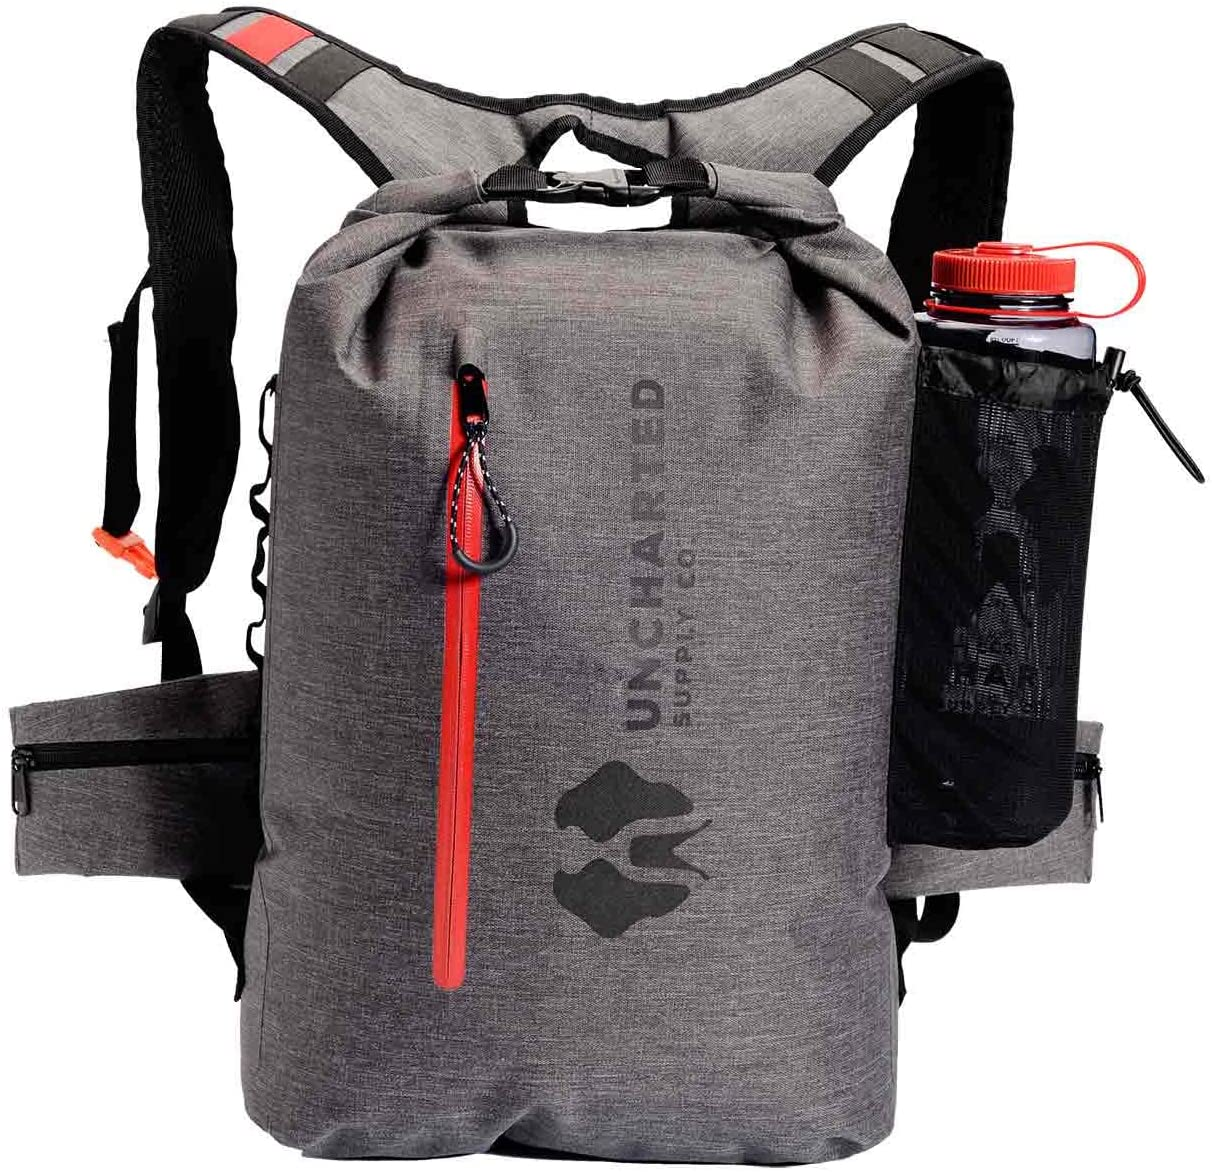 Max 41% latest OFF Uncharted Supply Co The Seventy2 Survival 72 Grey System - Hour